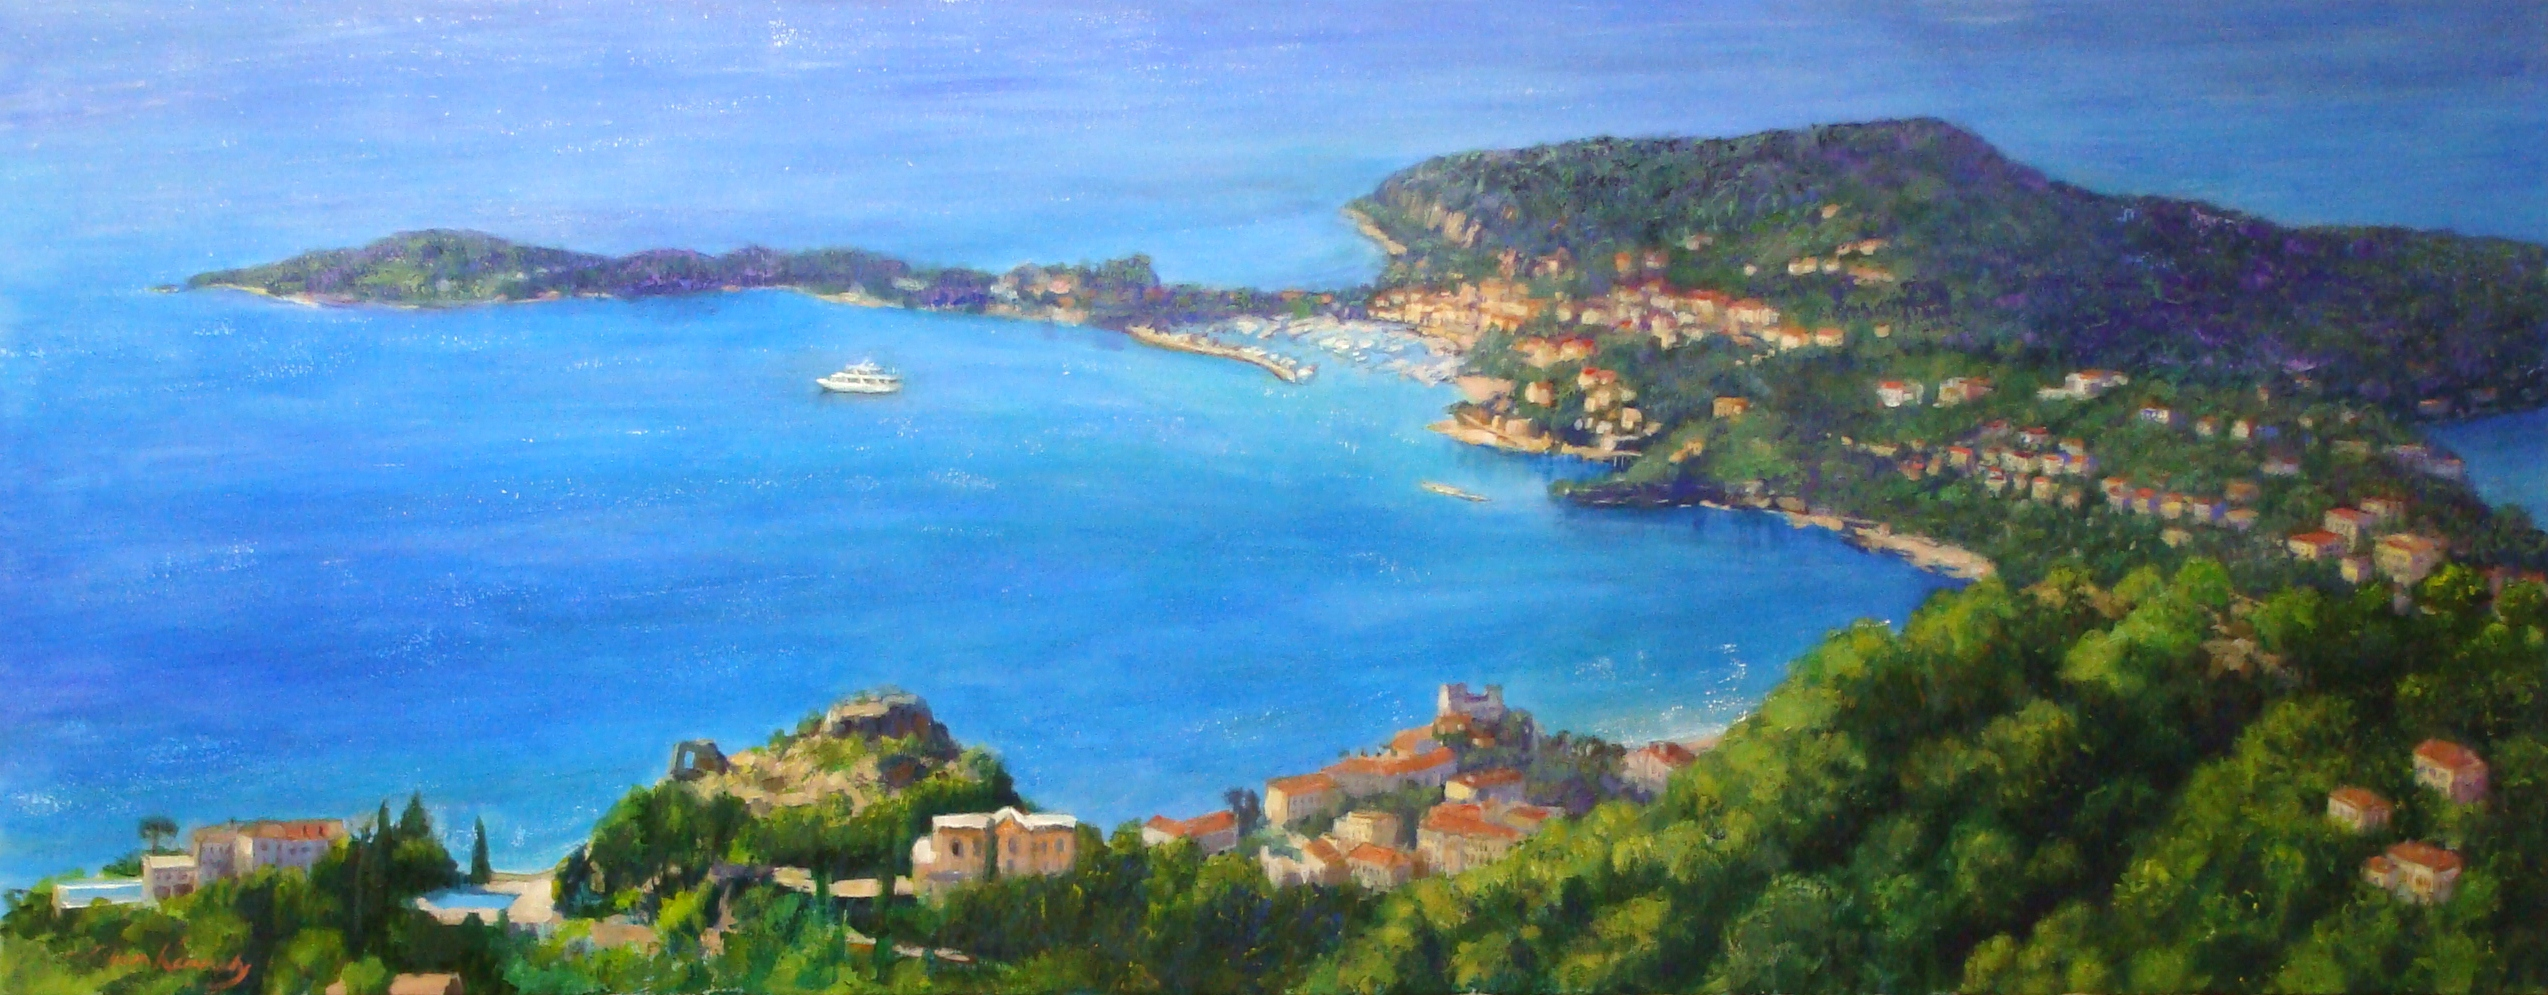 """St Jean Cap Ferrat on the French Riviera (25"""" x 64"""" acrylic ) is one of the other commissions delivered this week. Lillian Kennedy"""